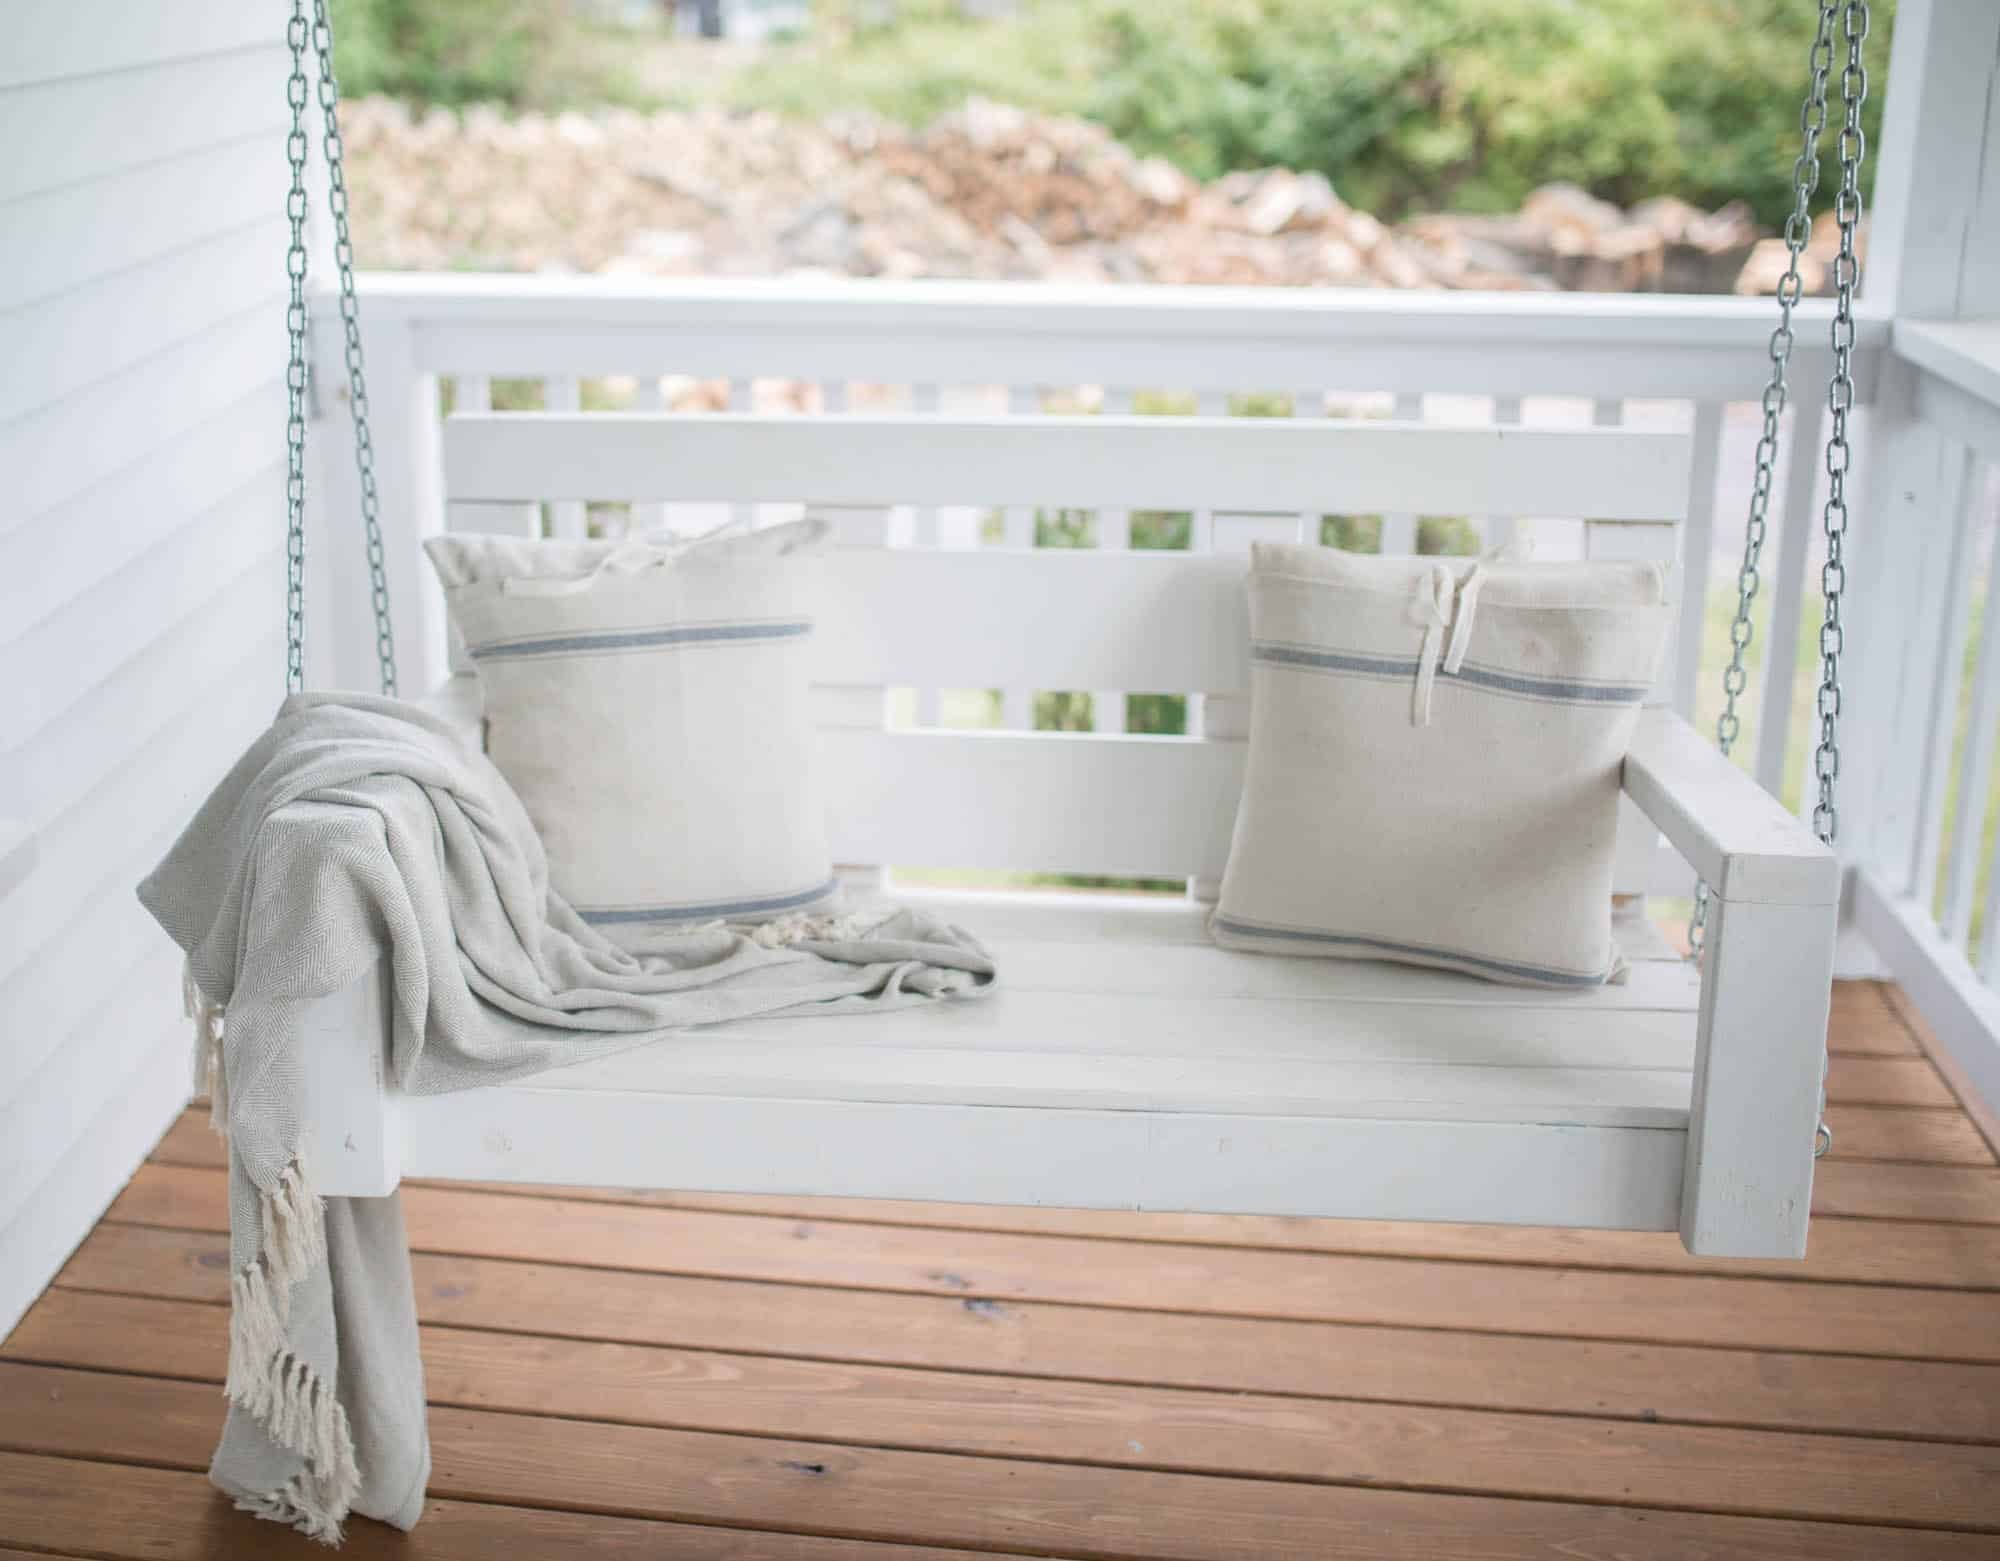 Farmhouse Front Porch Swing Fall Farmhouse Front Porch Farmhouse On Boone